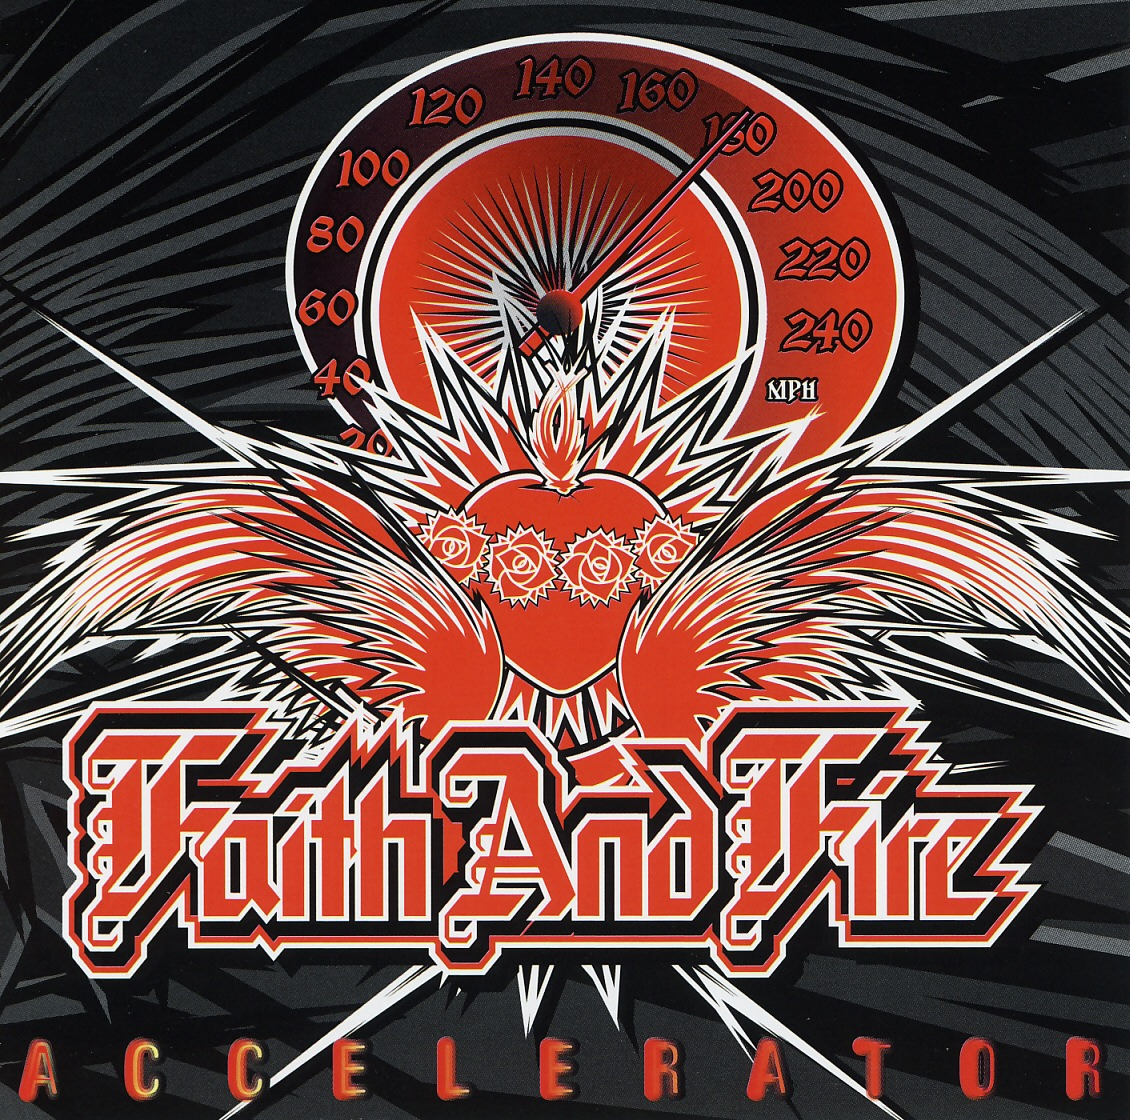 faith in fire - 04/18/2018 @ 9:00 am - 9:00 pm - vince ambrosetti will bring his music and preaching to the parish of st mary of mount carmel in hammonton, new jersey.